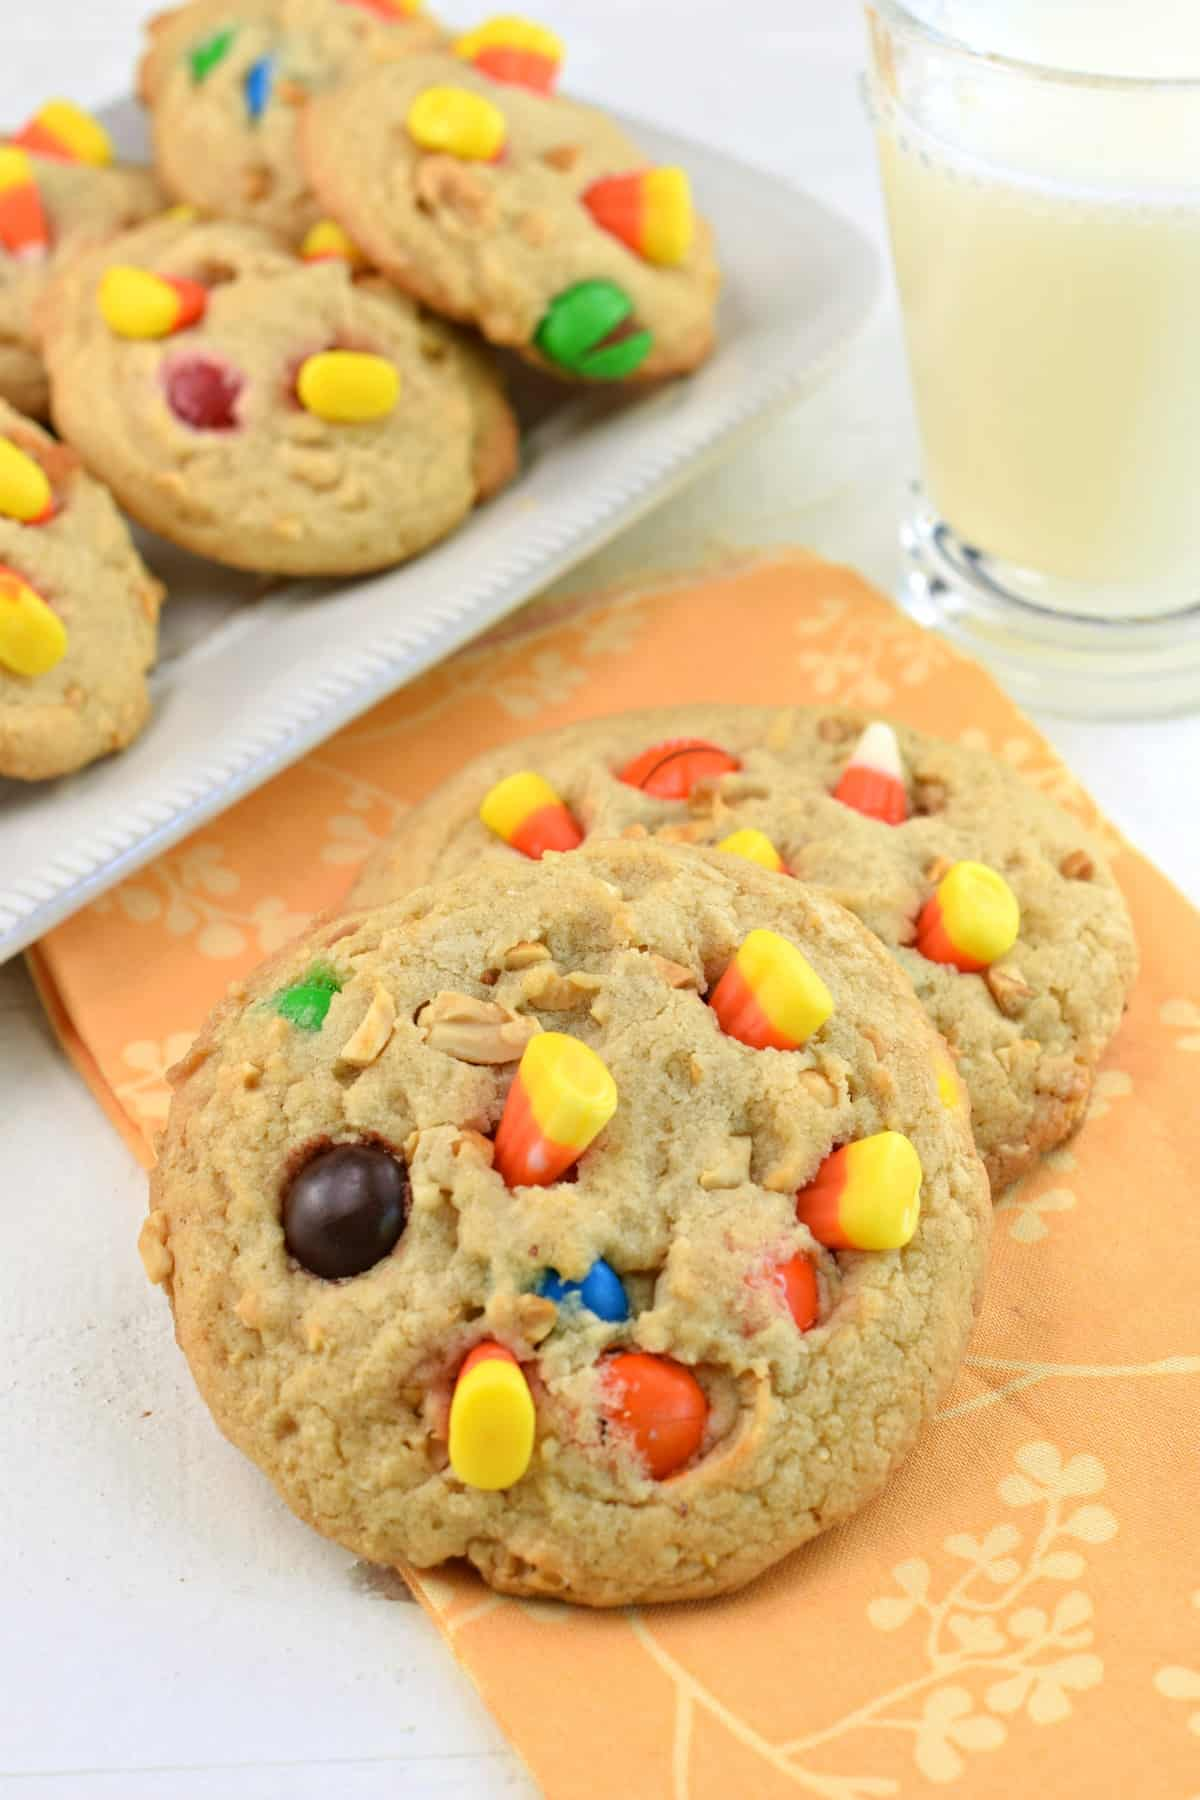 Pay Day cookies with peanuts, m&M's and candy corn, stacked on a light orange linen.